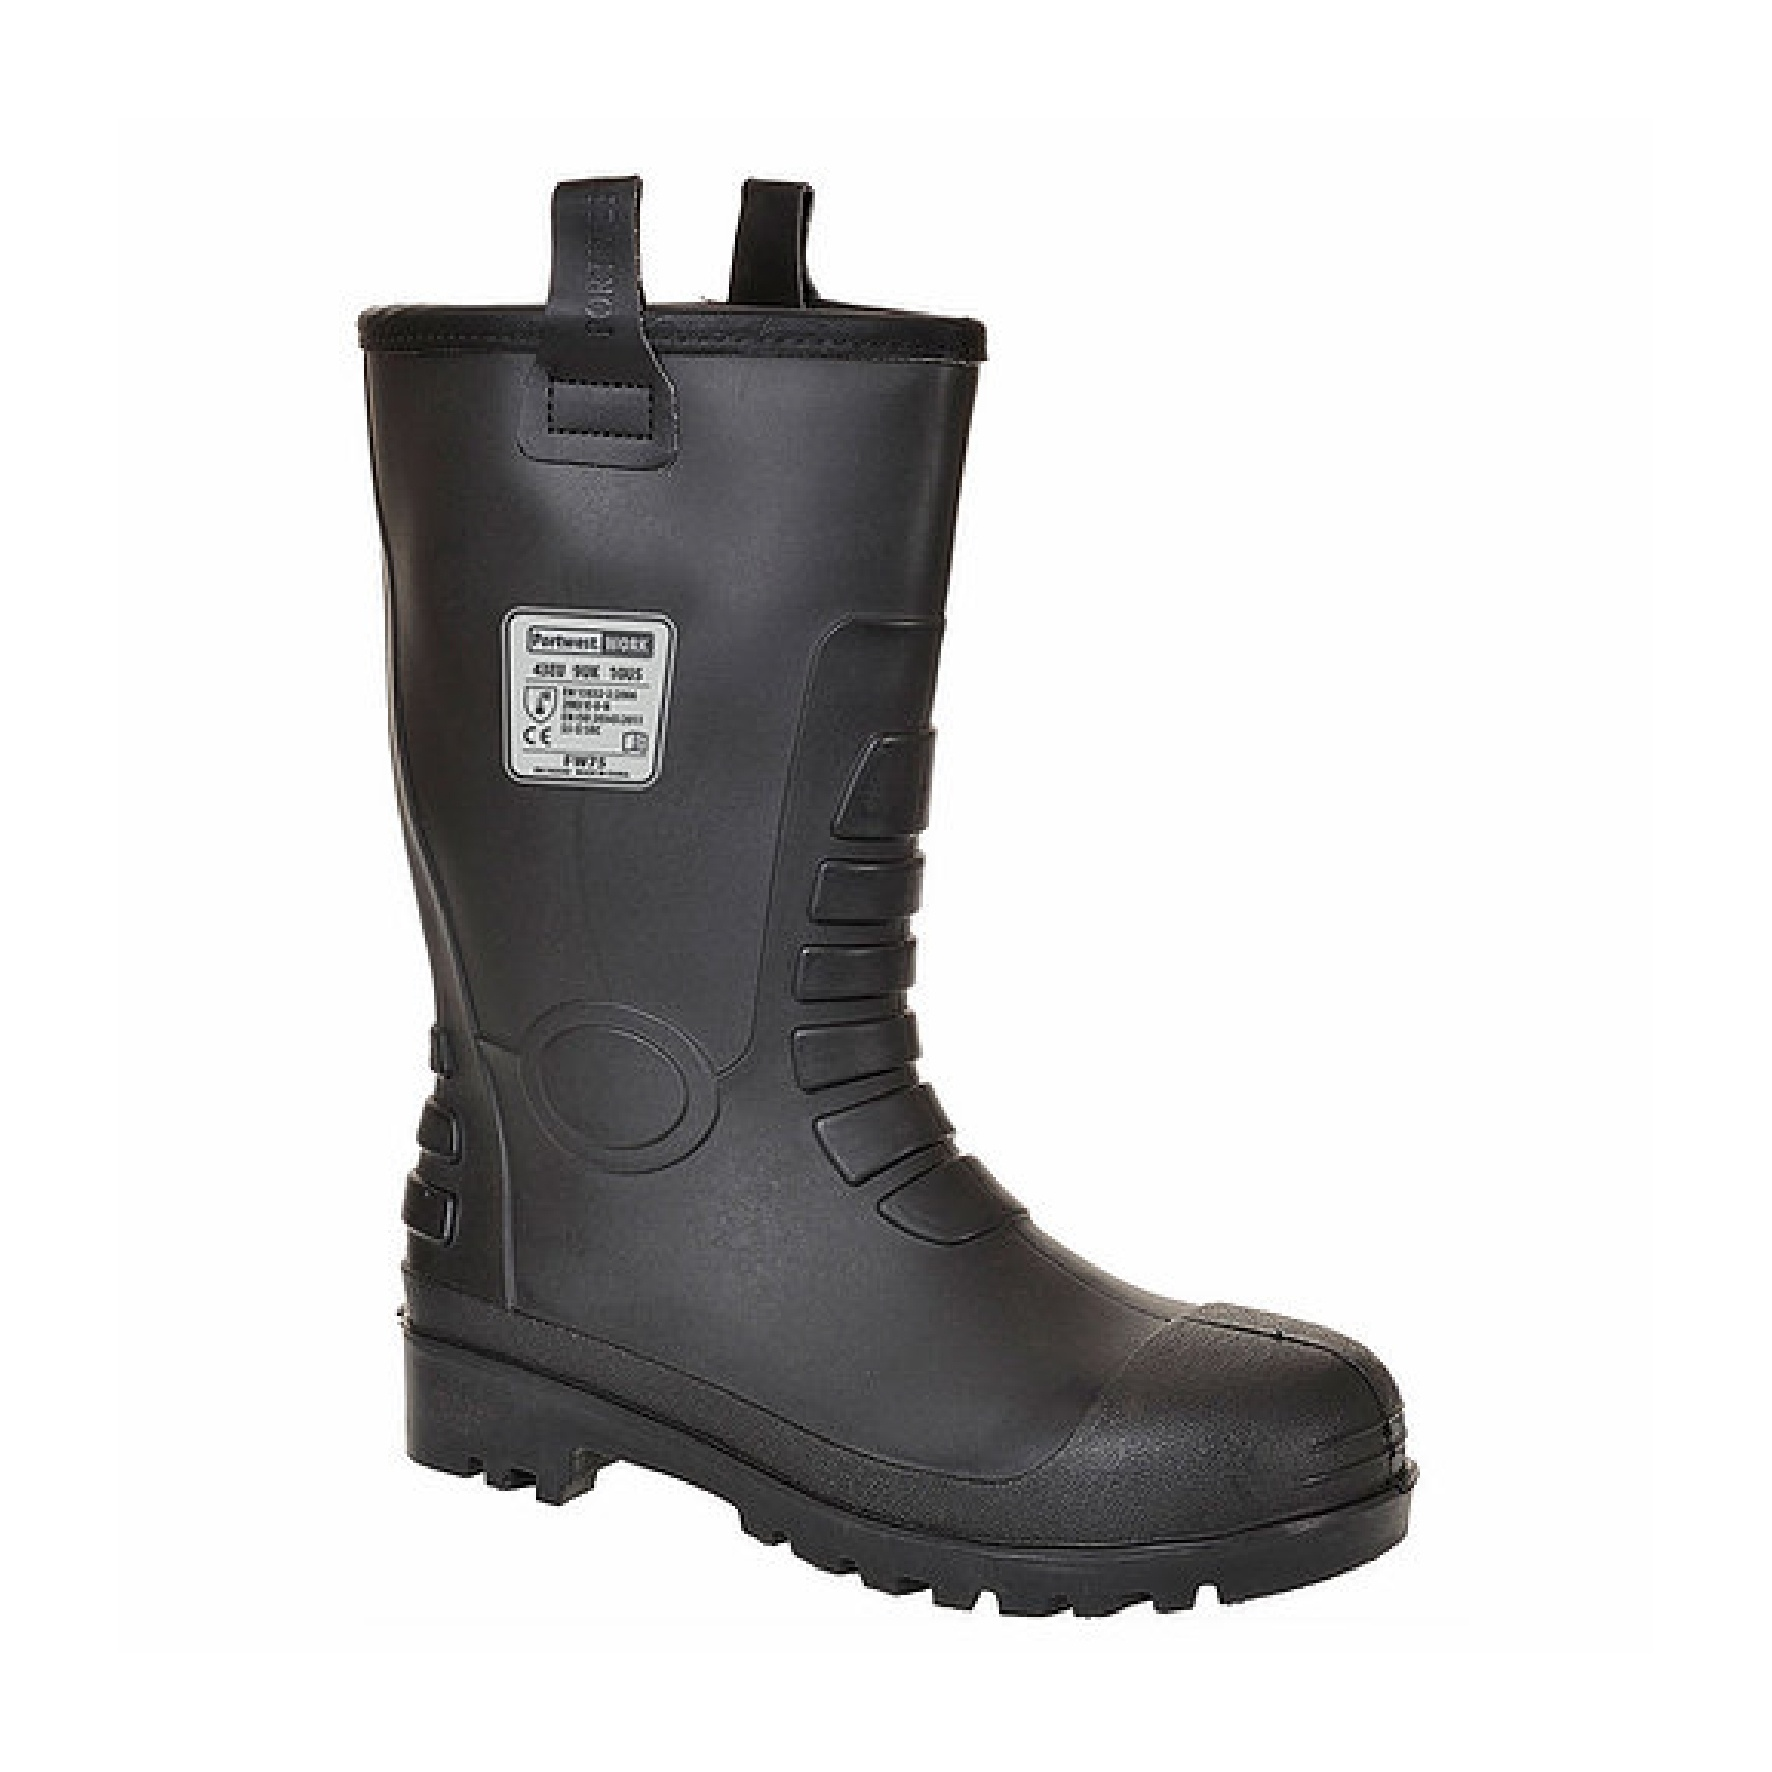 Redrok Workwear Centre Plymouth Neptune Rigger Boot Black